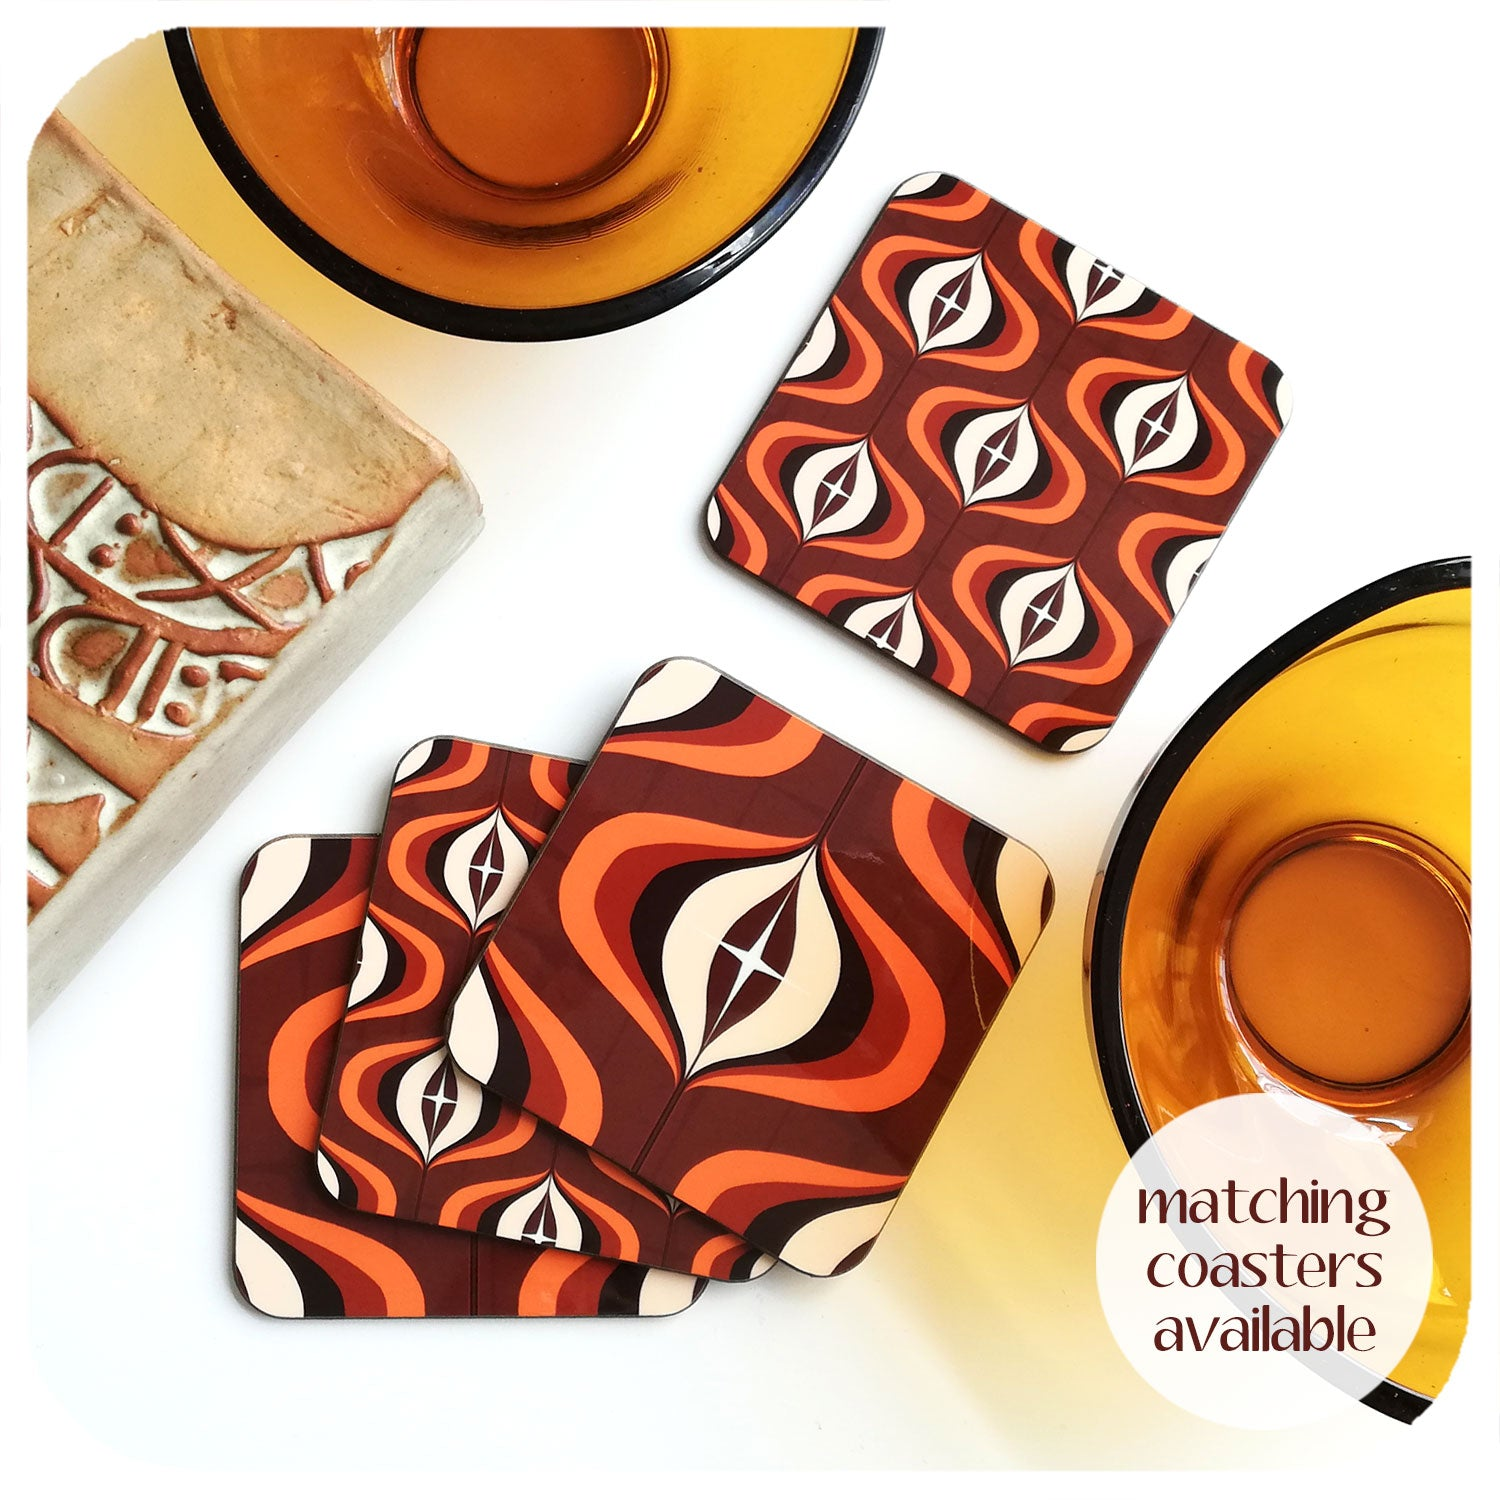 1970s Op Art Coasters in Brown and Orange with vintage vase and bowls | The Inkabilly Emporium